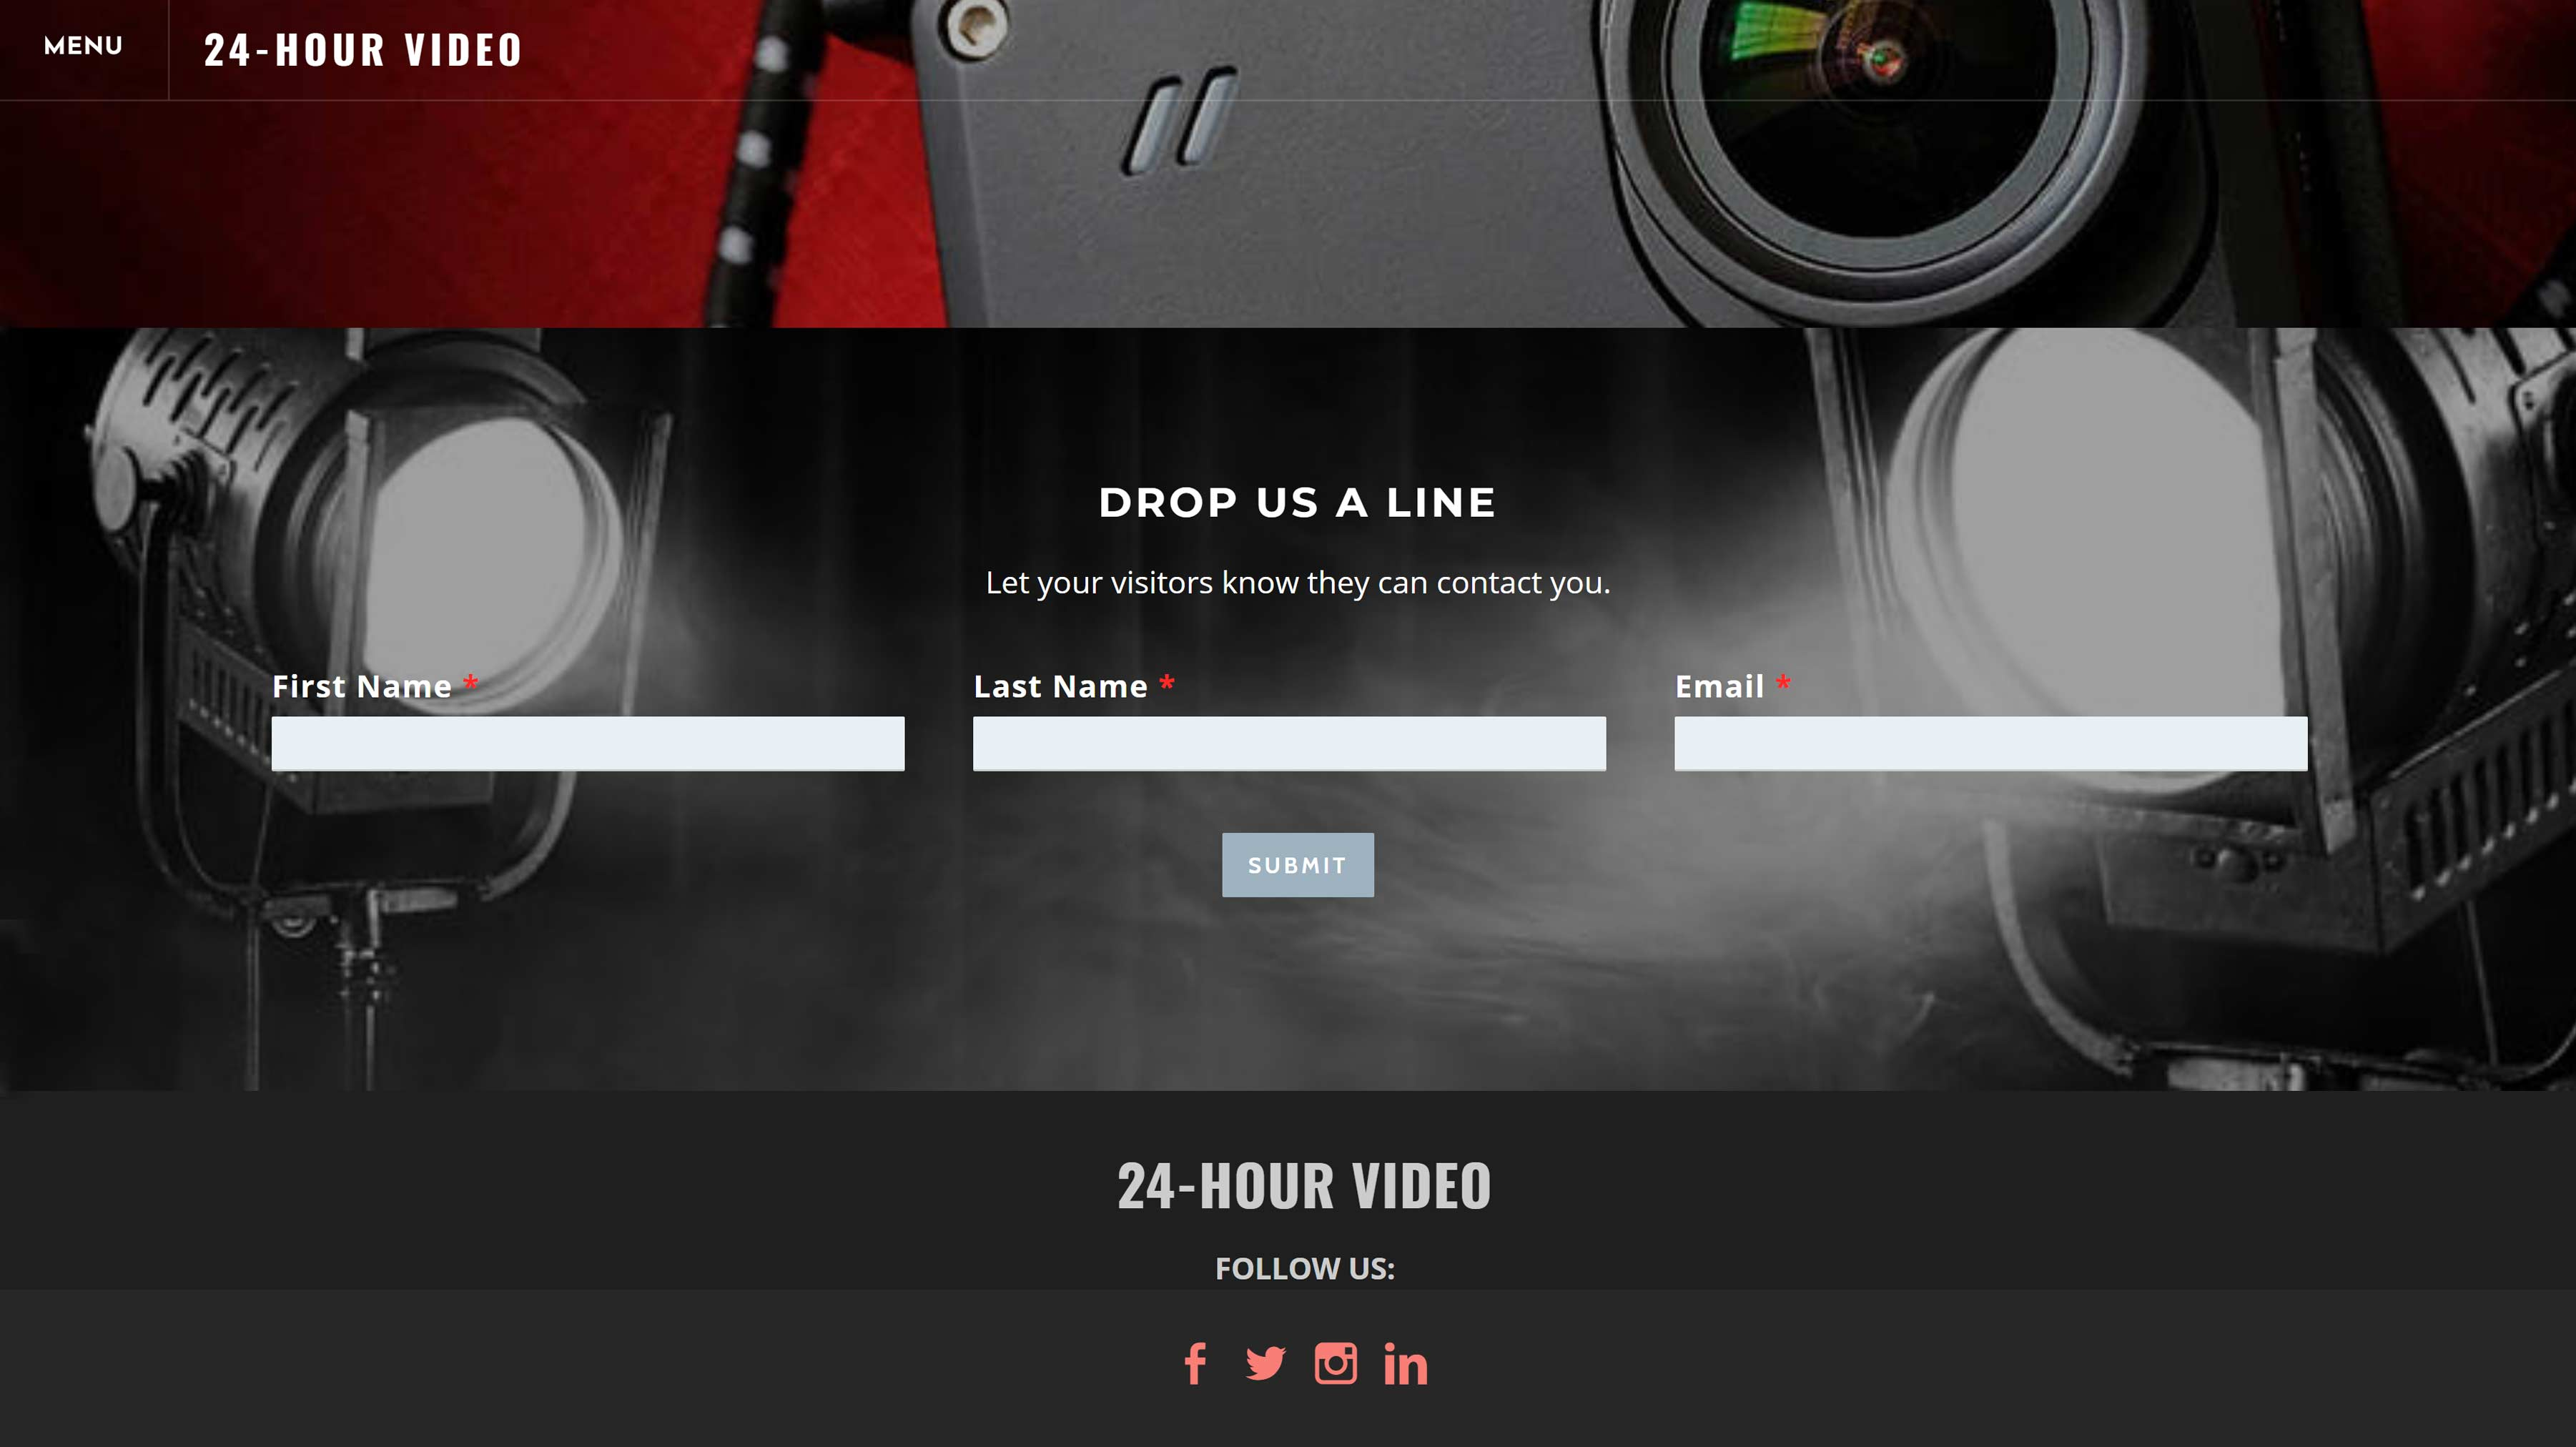 All-In-One Online Video Sales Website - 24 Hour Video Contact Us Page Example